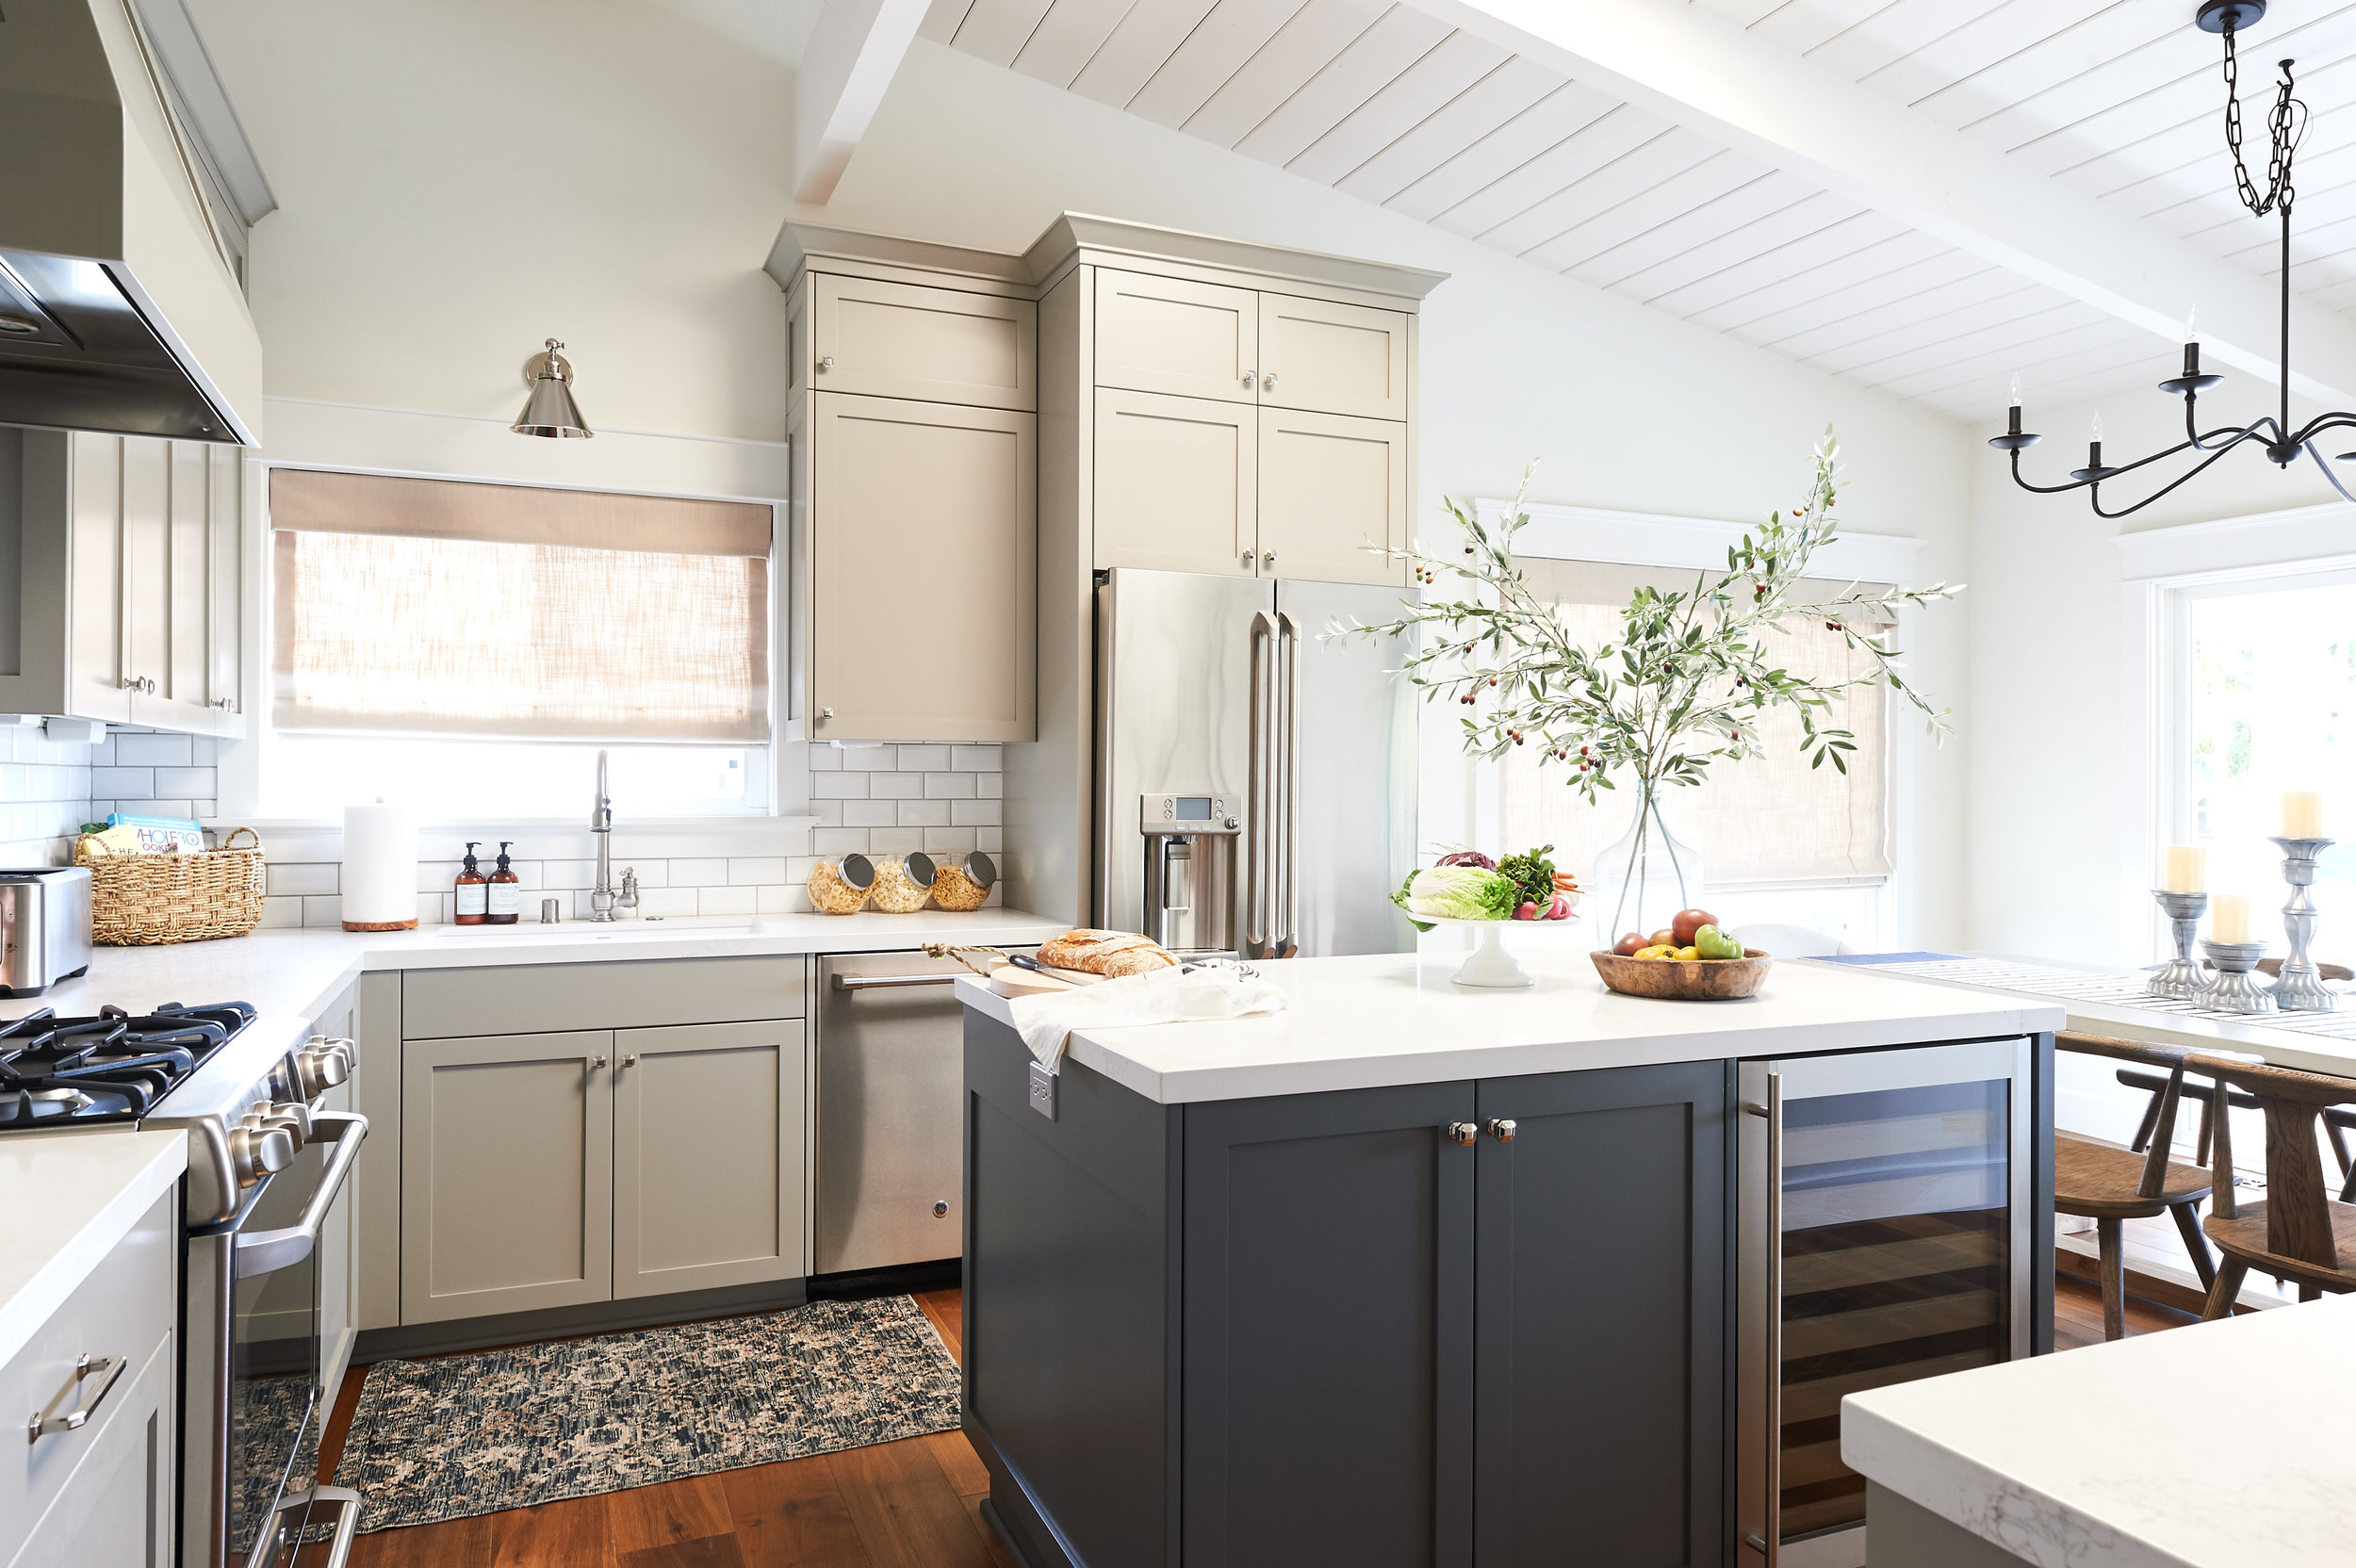 Our Faux Tangerine Branches are the perfect addition to this kitchen island.